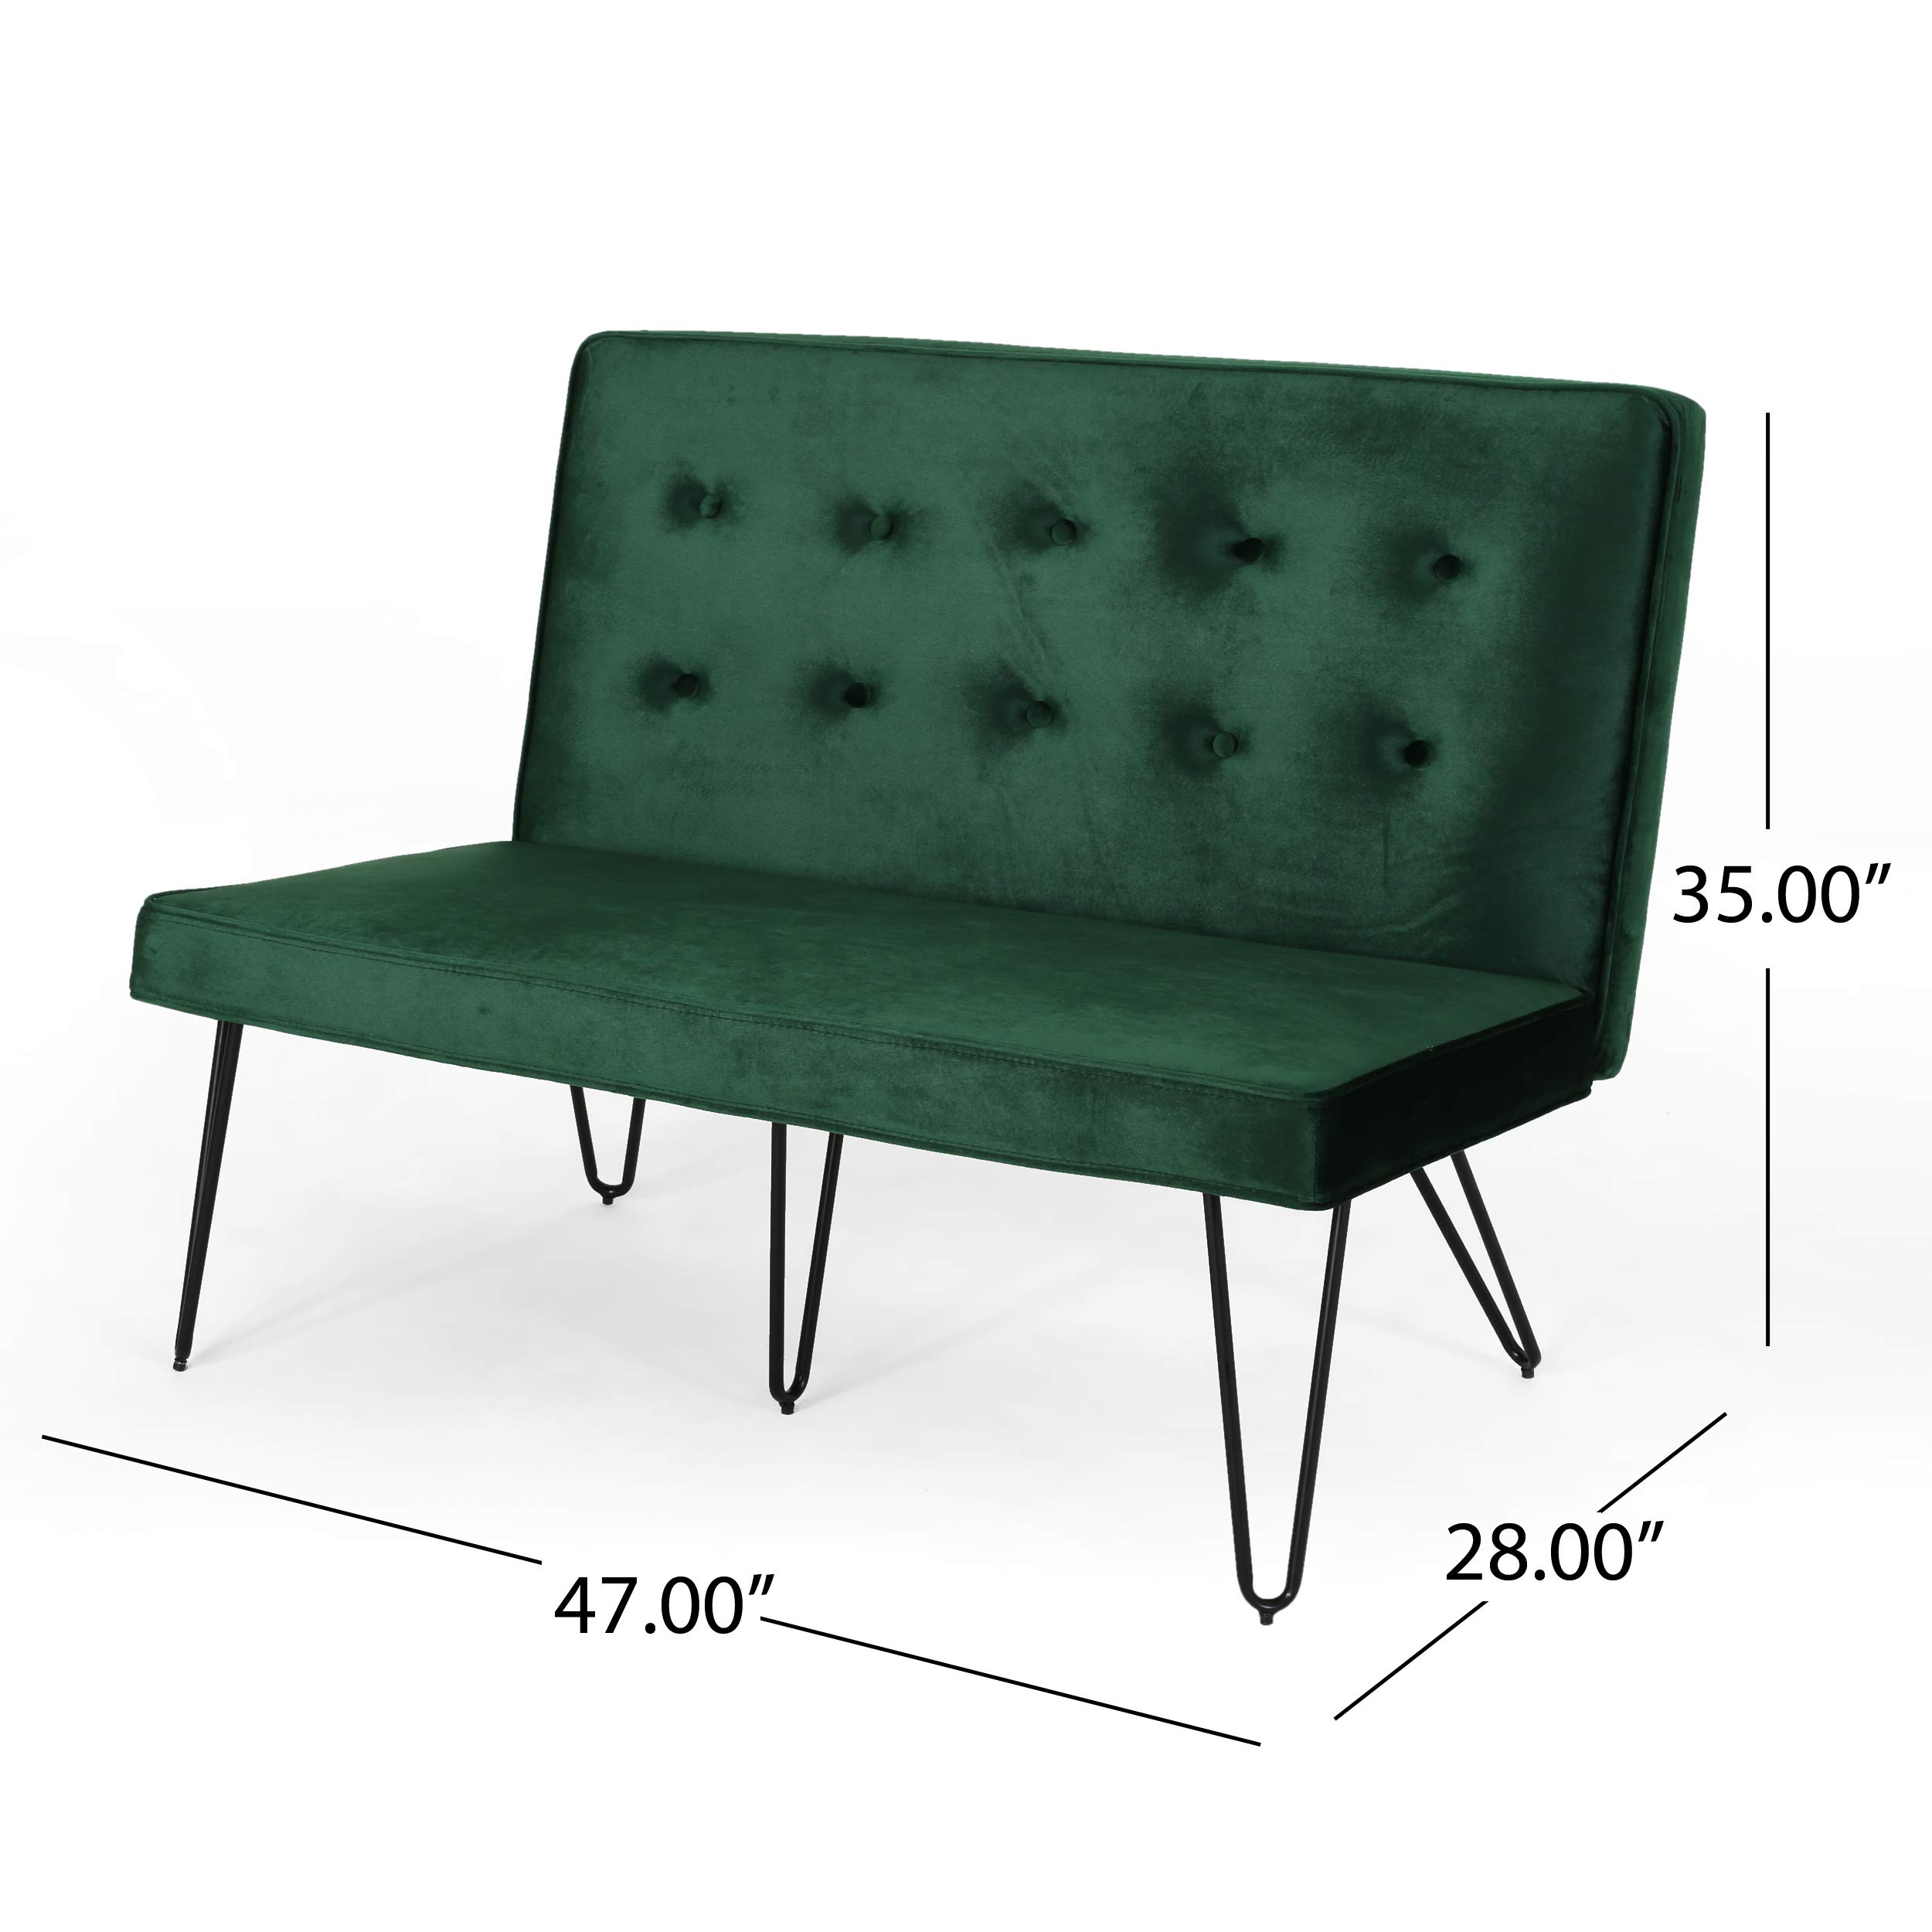 Beatrice Minimalist Dining Bench Settee with Tufted Velvet Cushion and Iron Legs - Emerald and Black by Great Deal Furniture (Image #2)